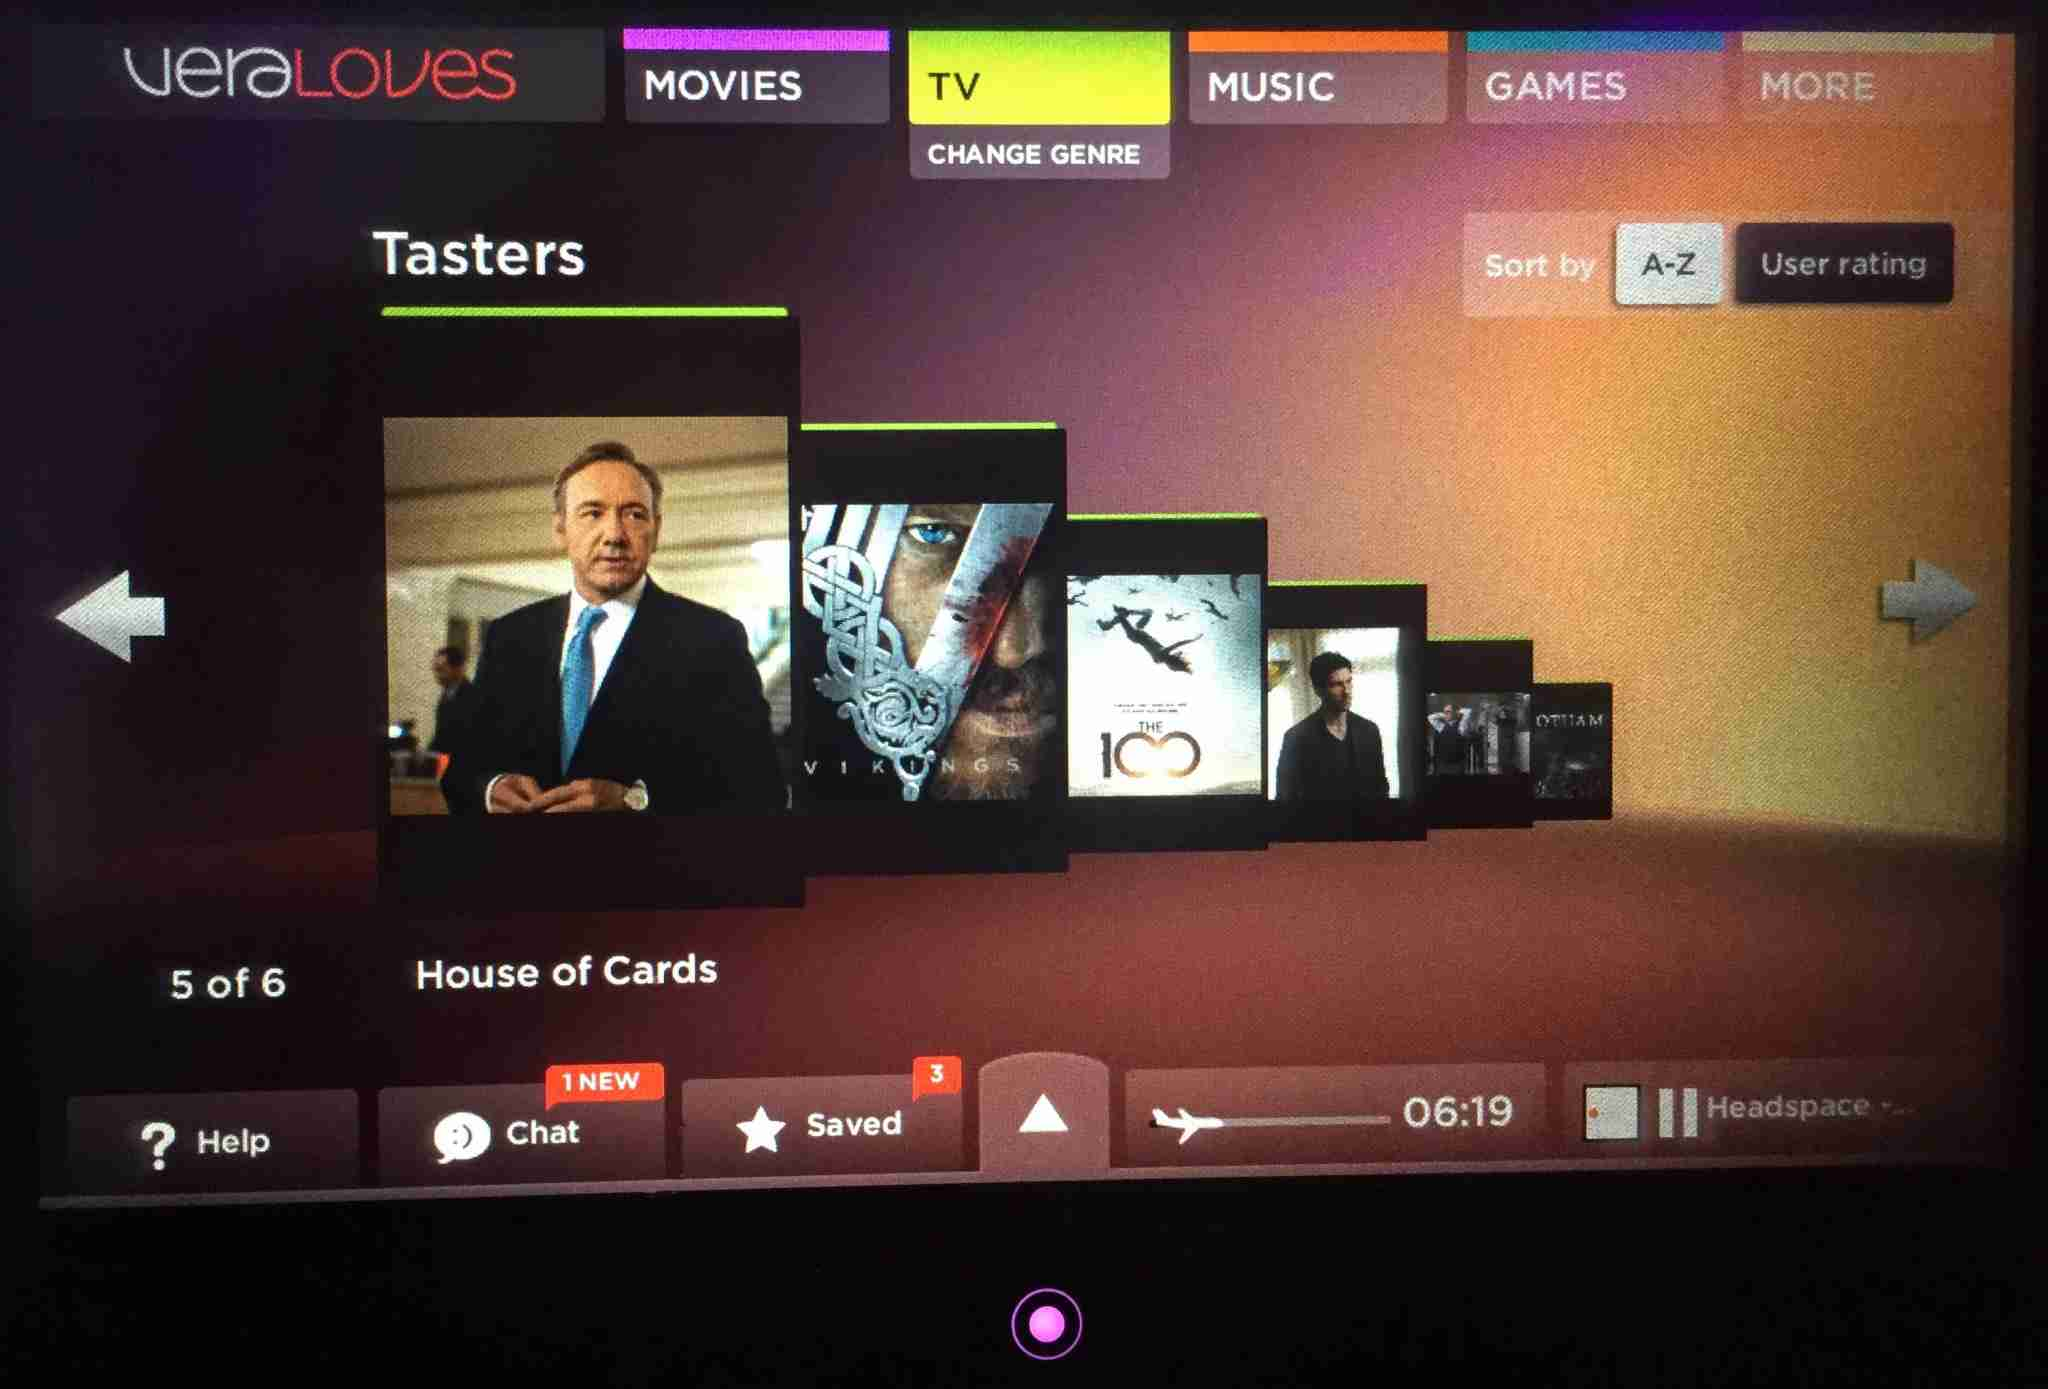 IMG-Virgin-IFE-TV-Kevin-Spacey